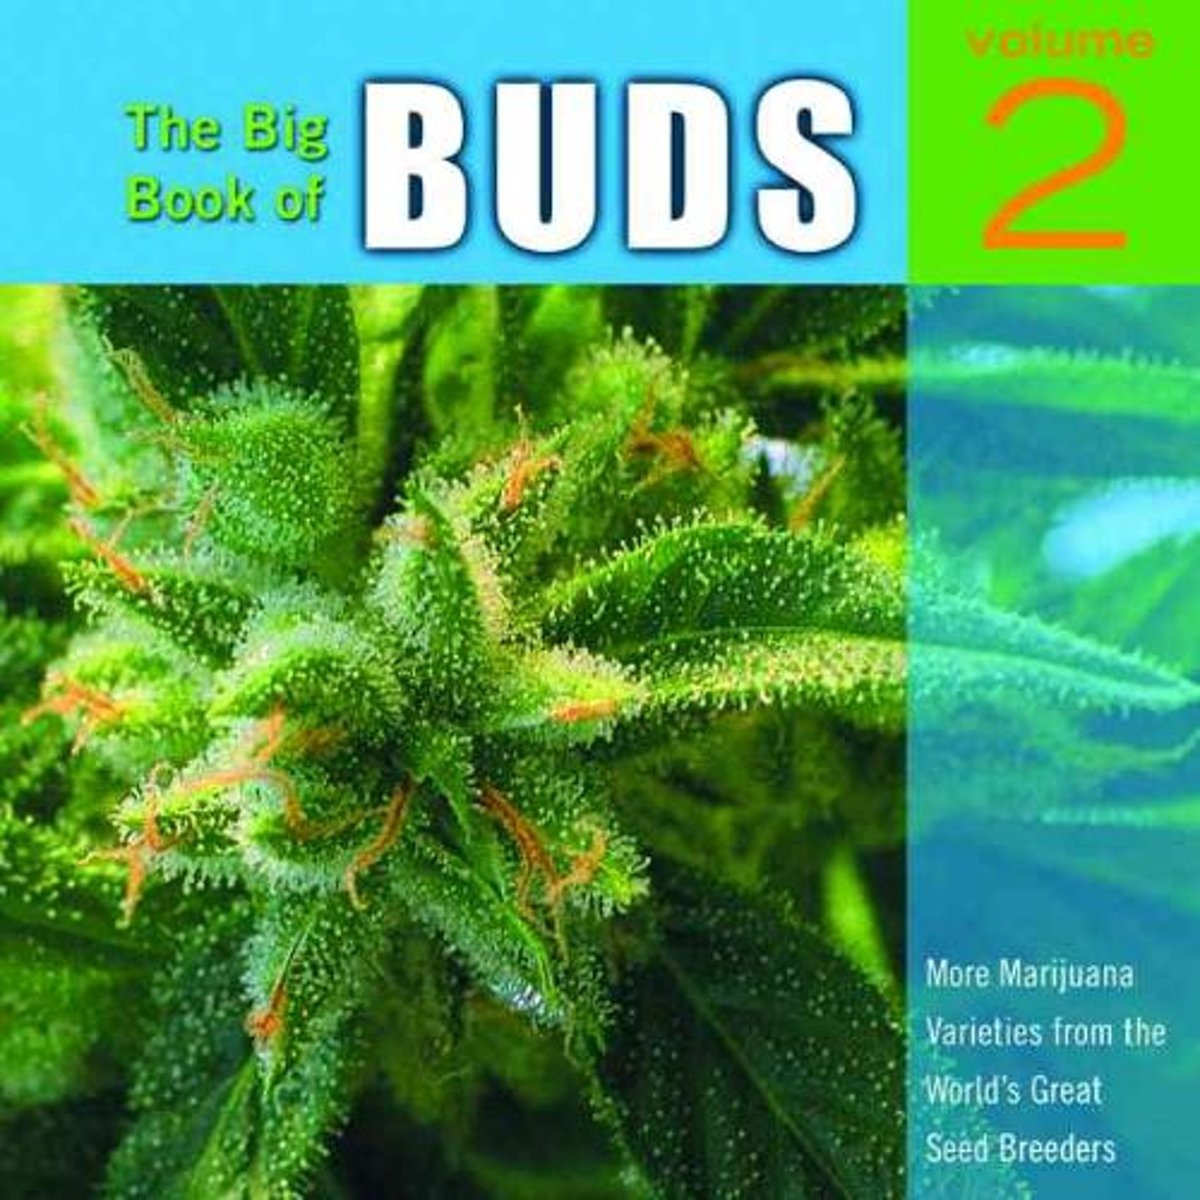 The Big Book Of Buds Vol. 2